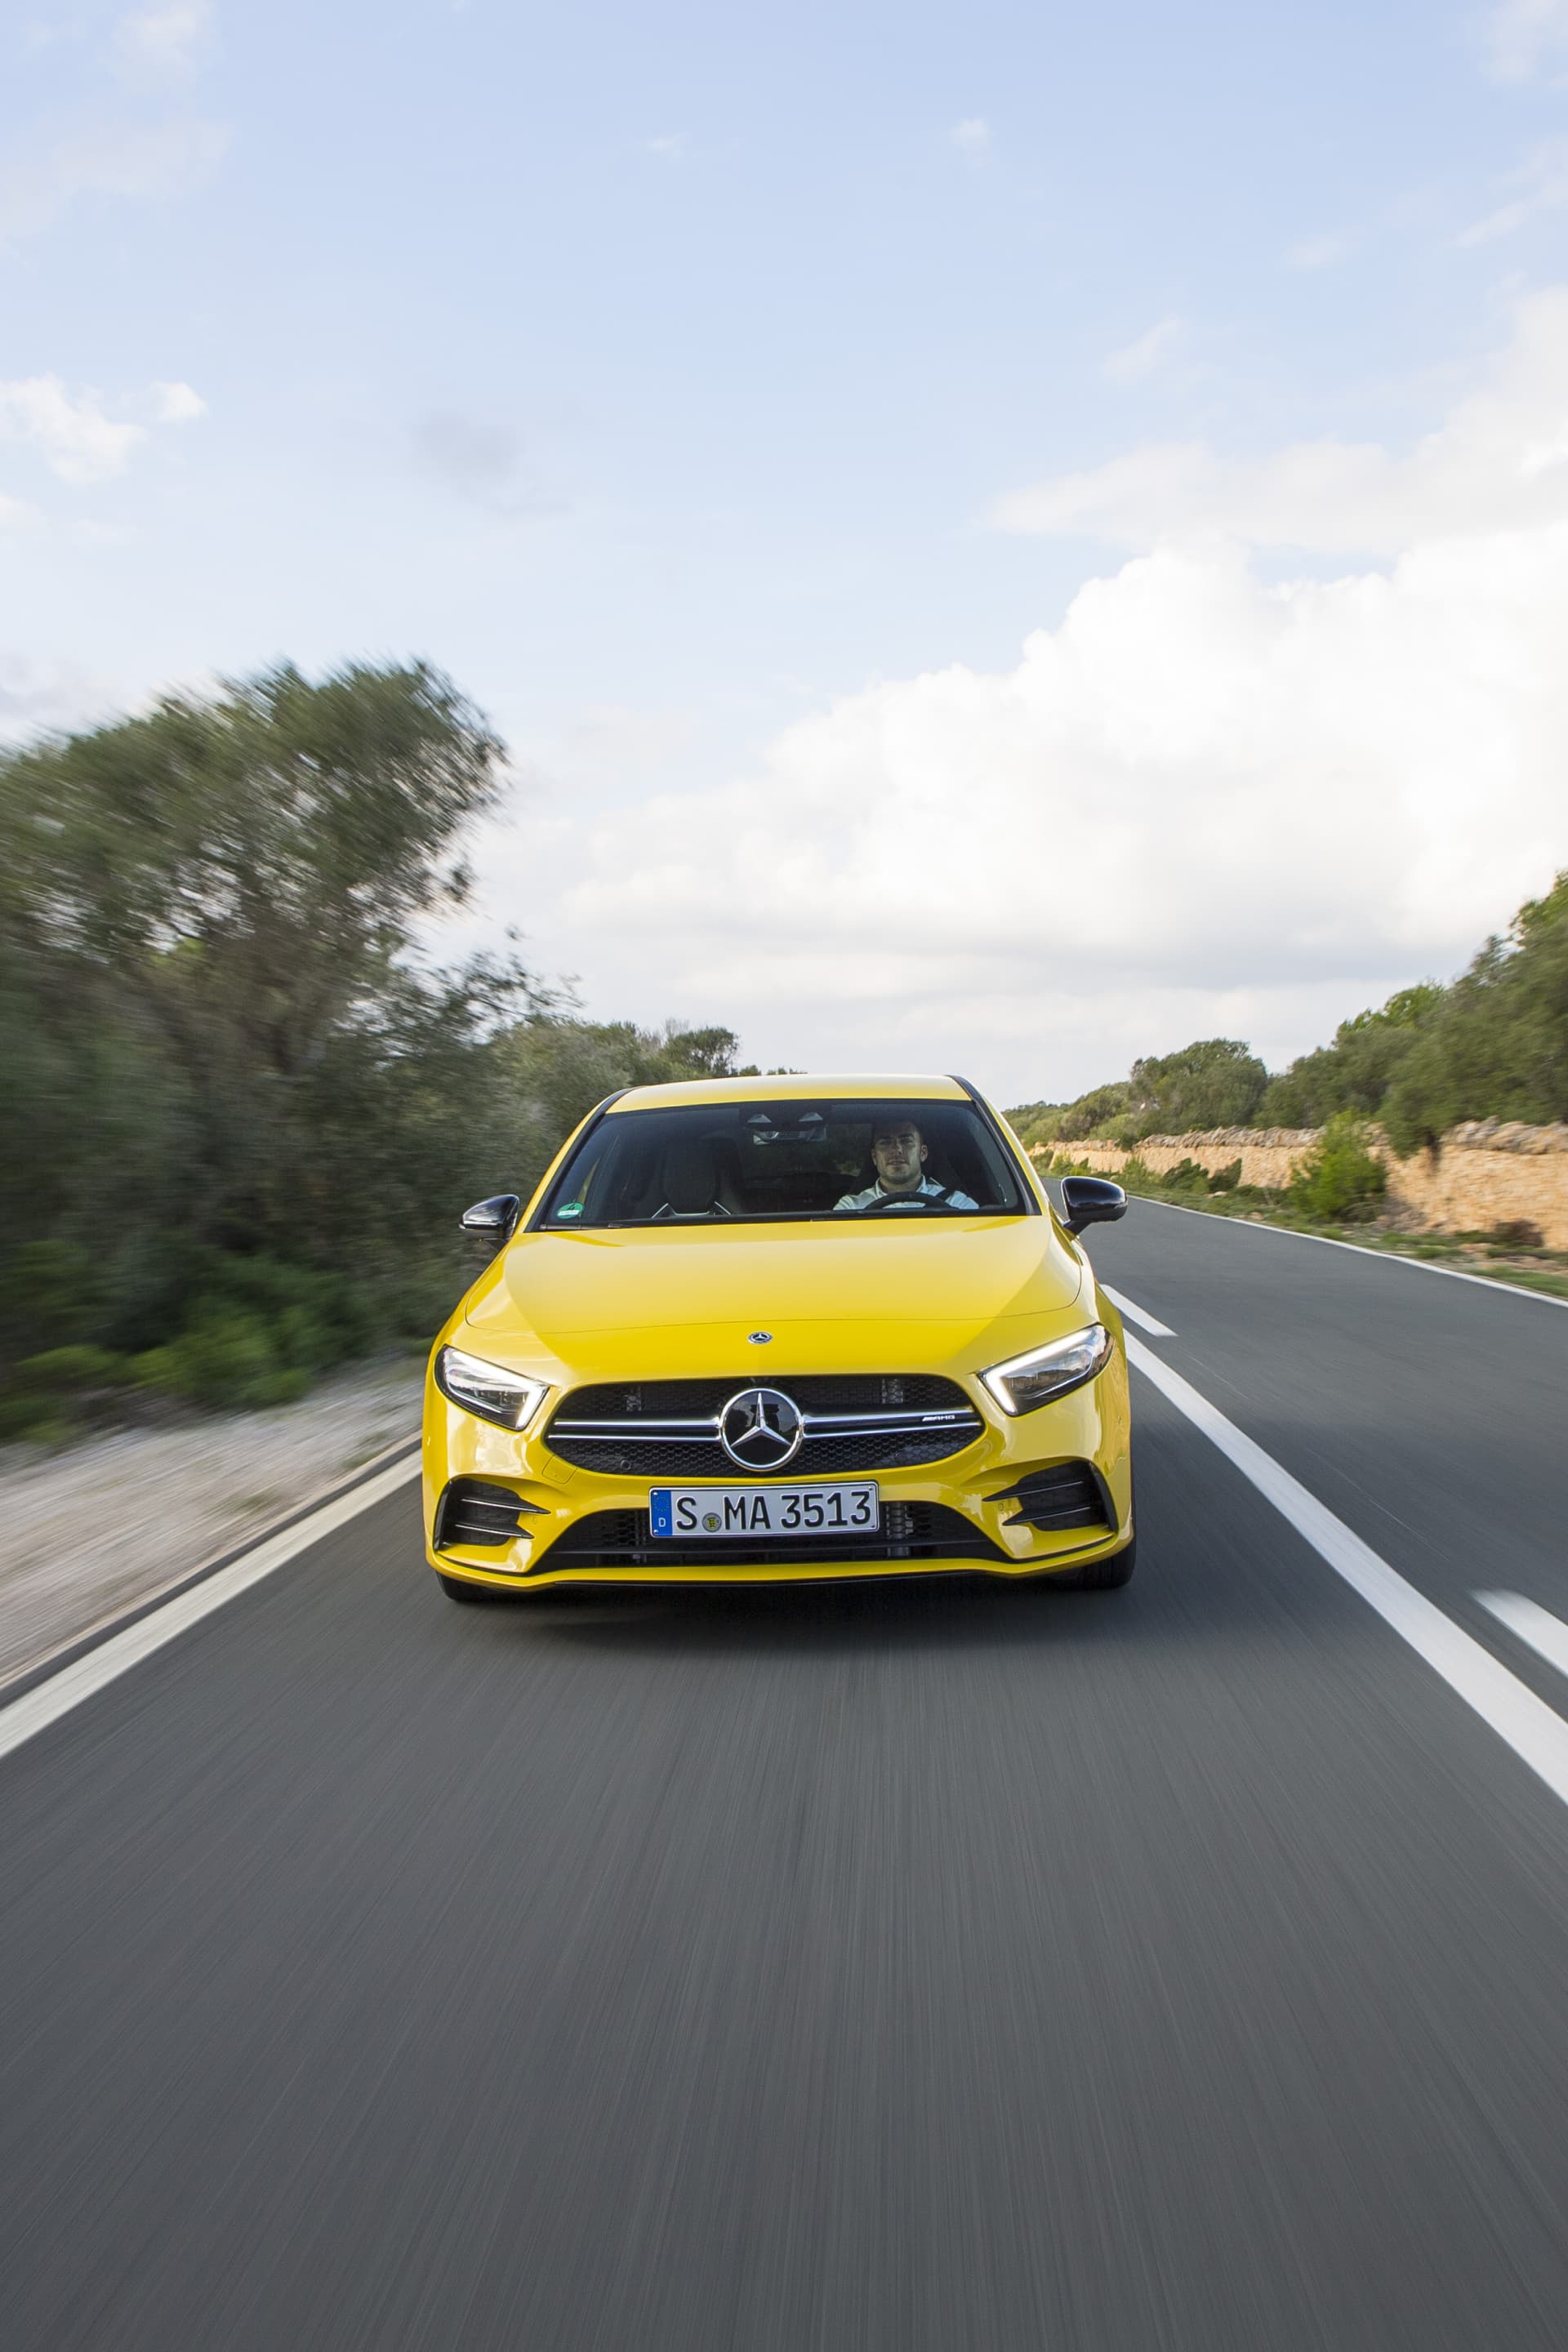 Der Neue Mercedes Amg A 35 4matic I Mallorca 2018// The New Mercedes Amg A 35 4matic I Mallorca 2018